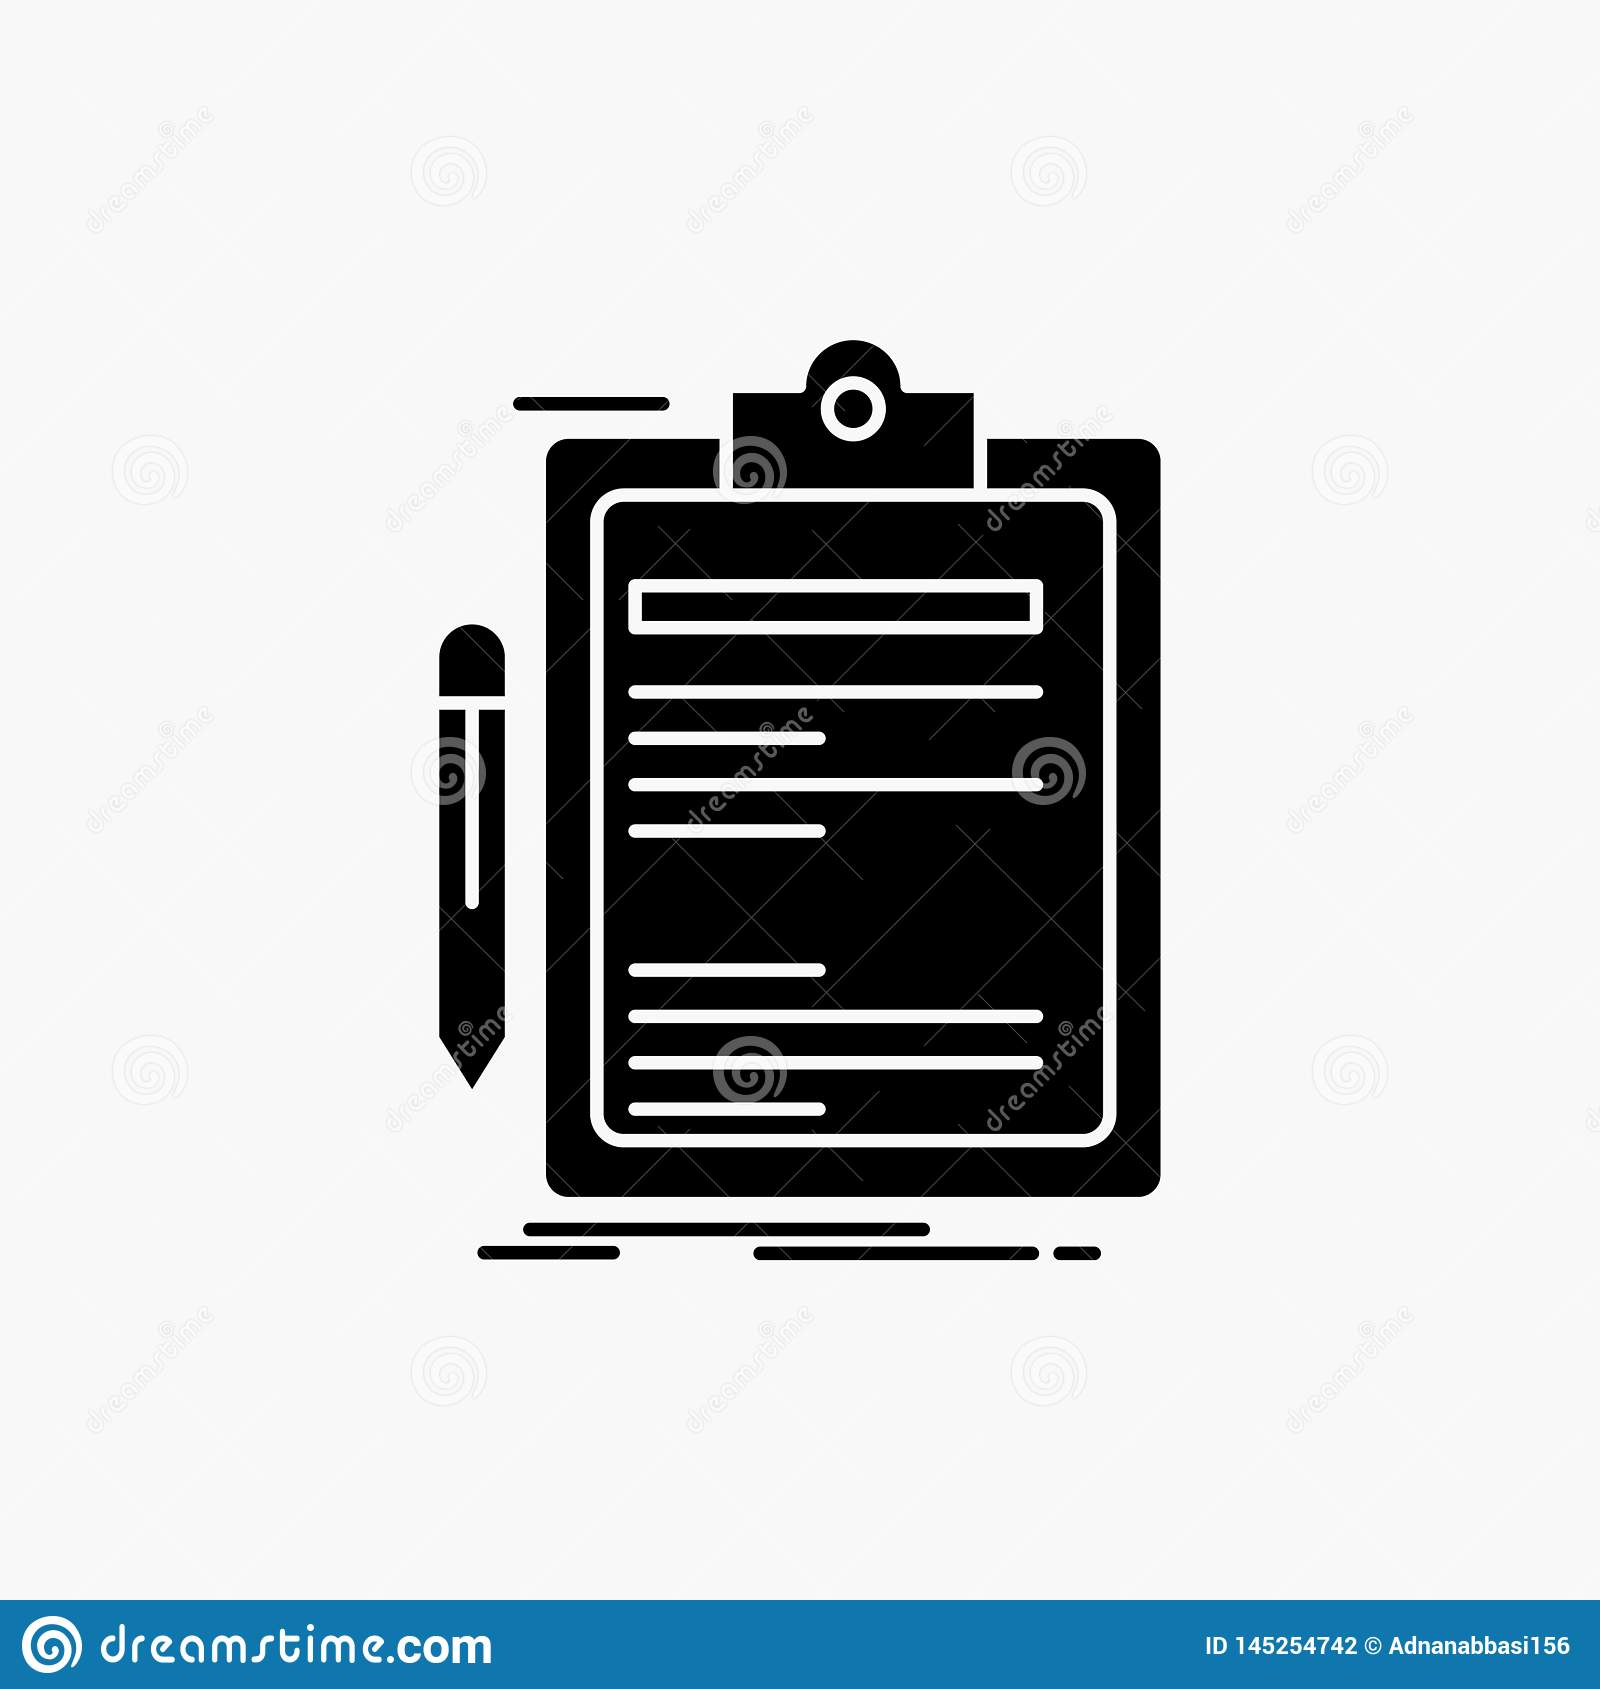 Contract, check, Business, done, clip board Glyph Icon. Vector isolated illustration